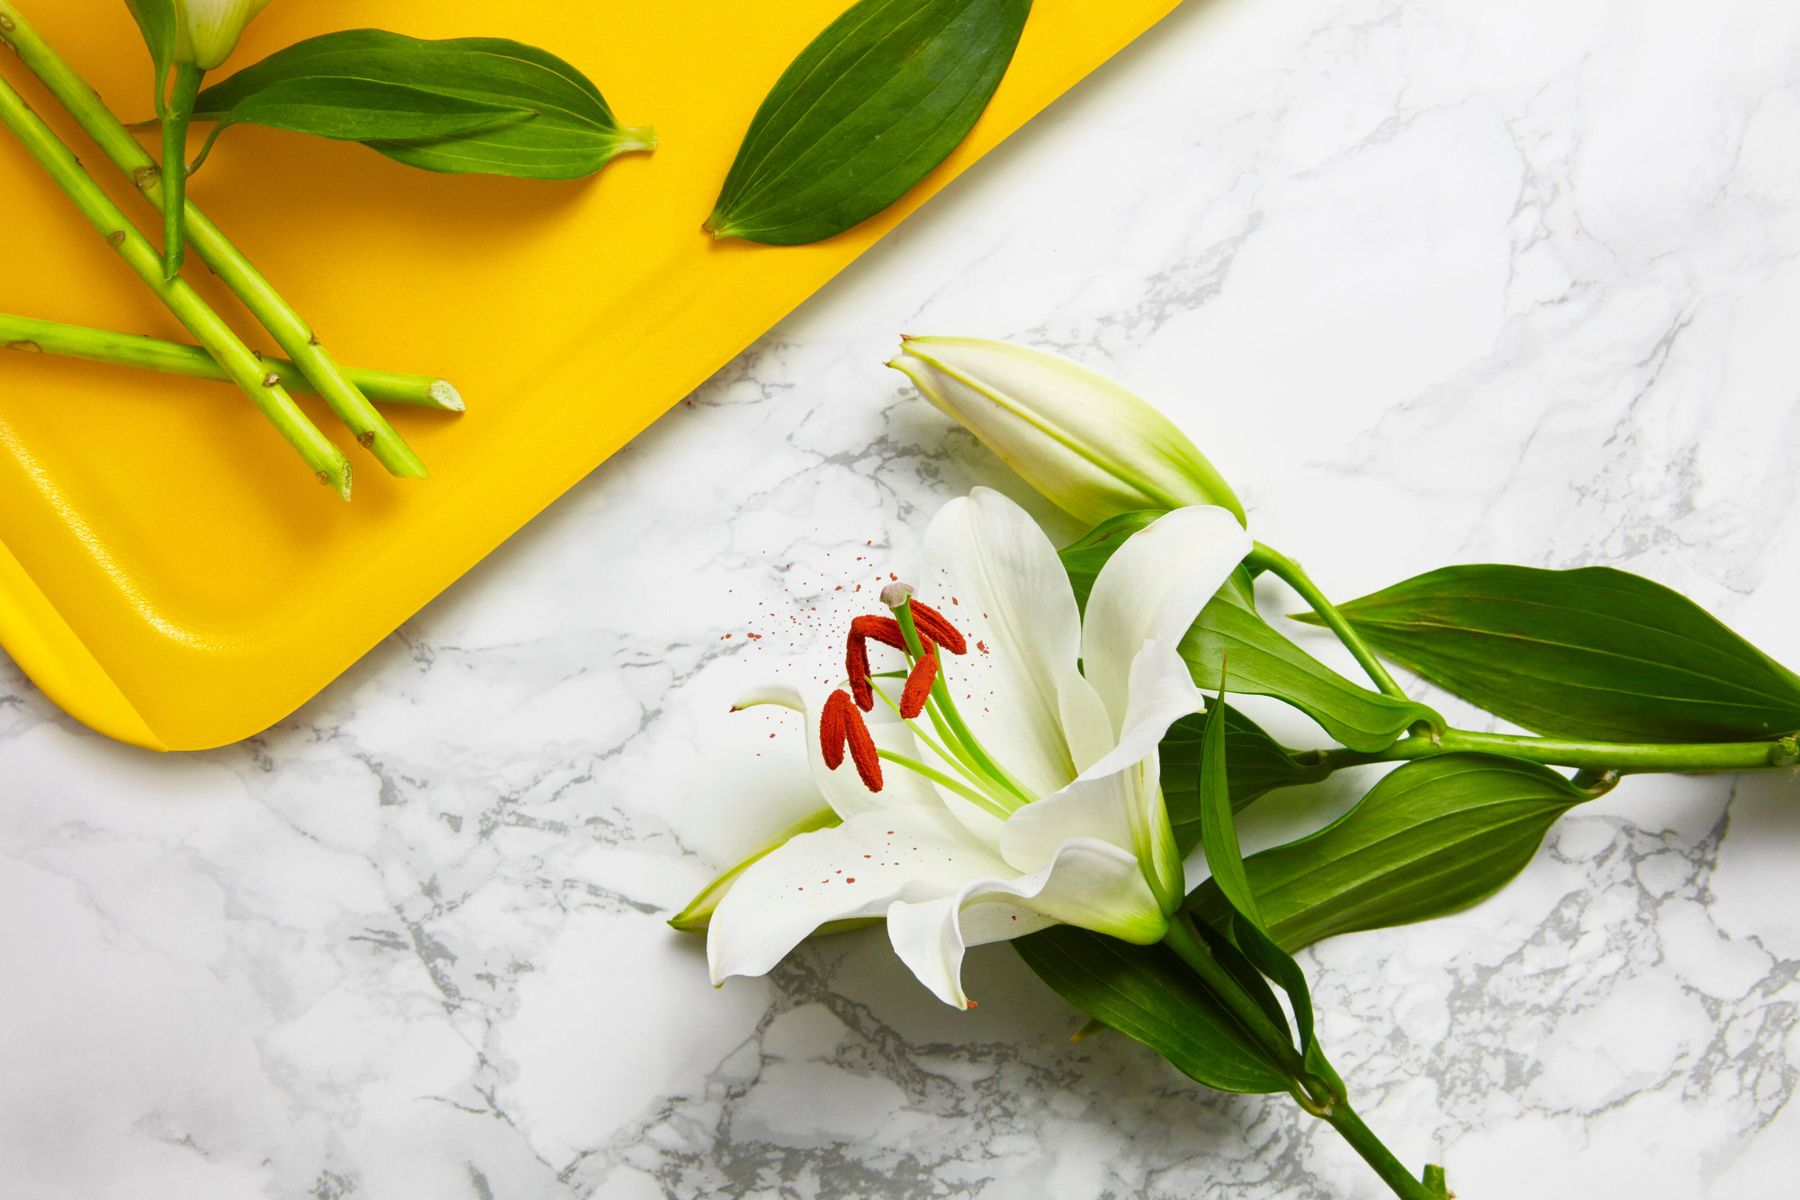 Cut lily flower on a chopping board as decoration for a home wedding